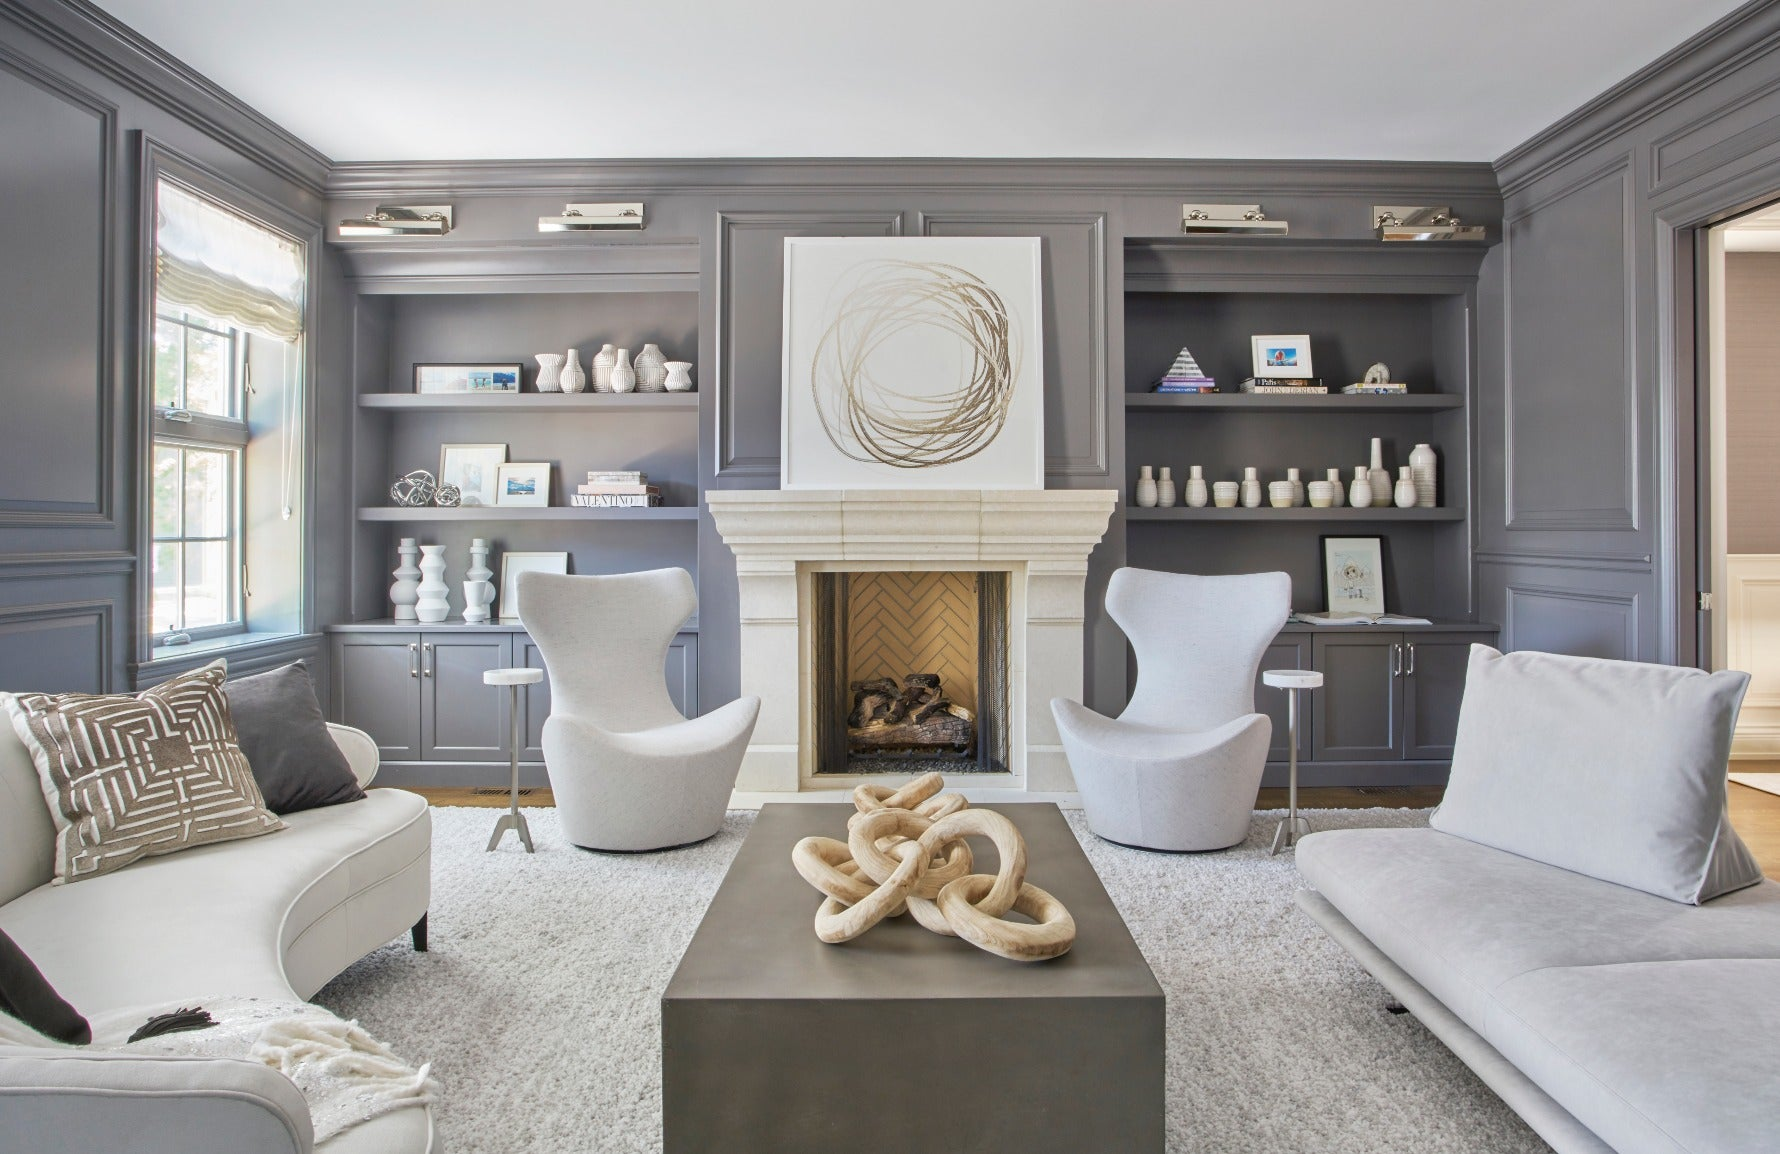 Images Of Grey Living Room Decor  from cdn.shopify.com